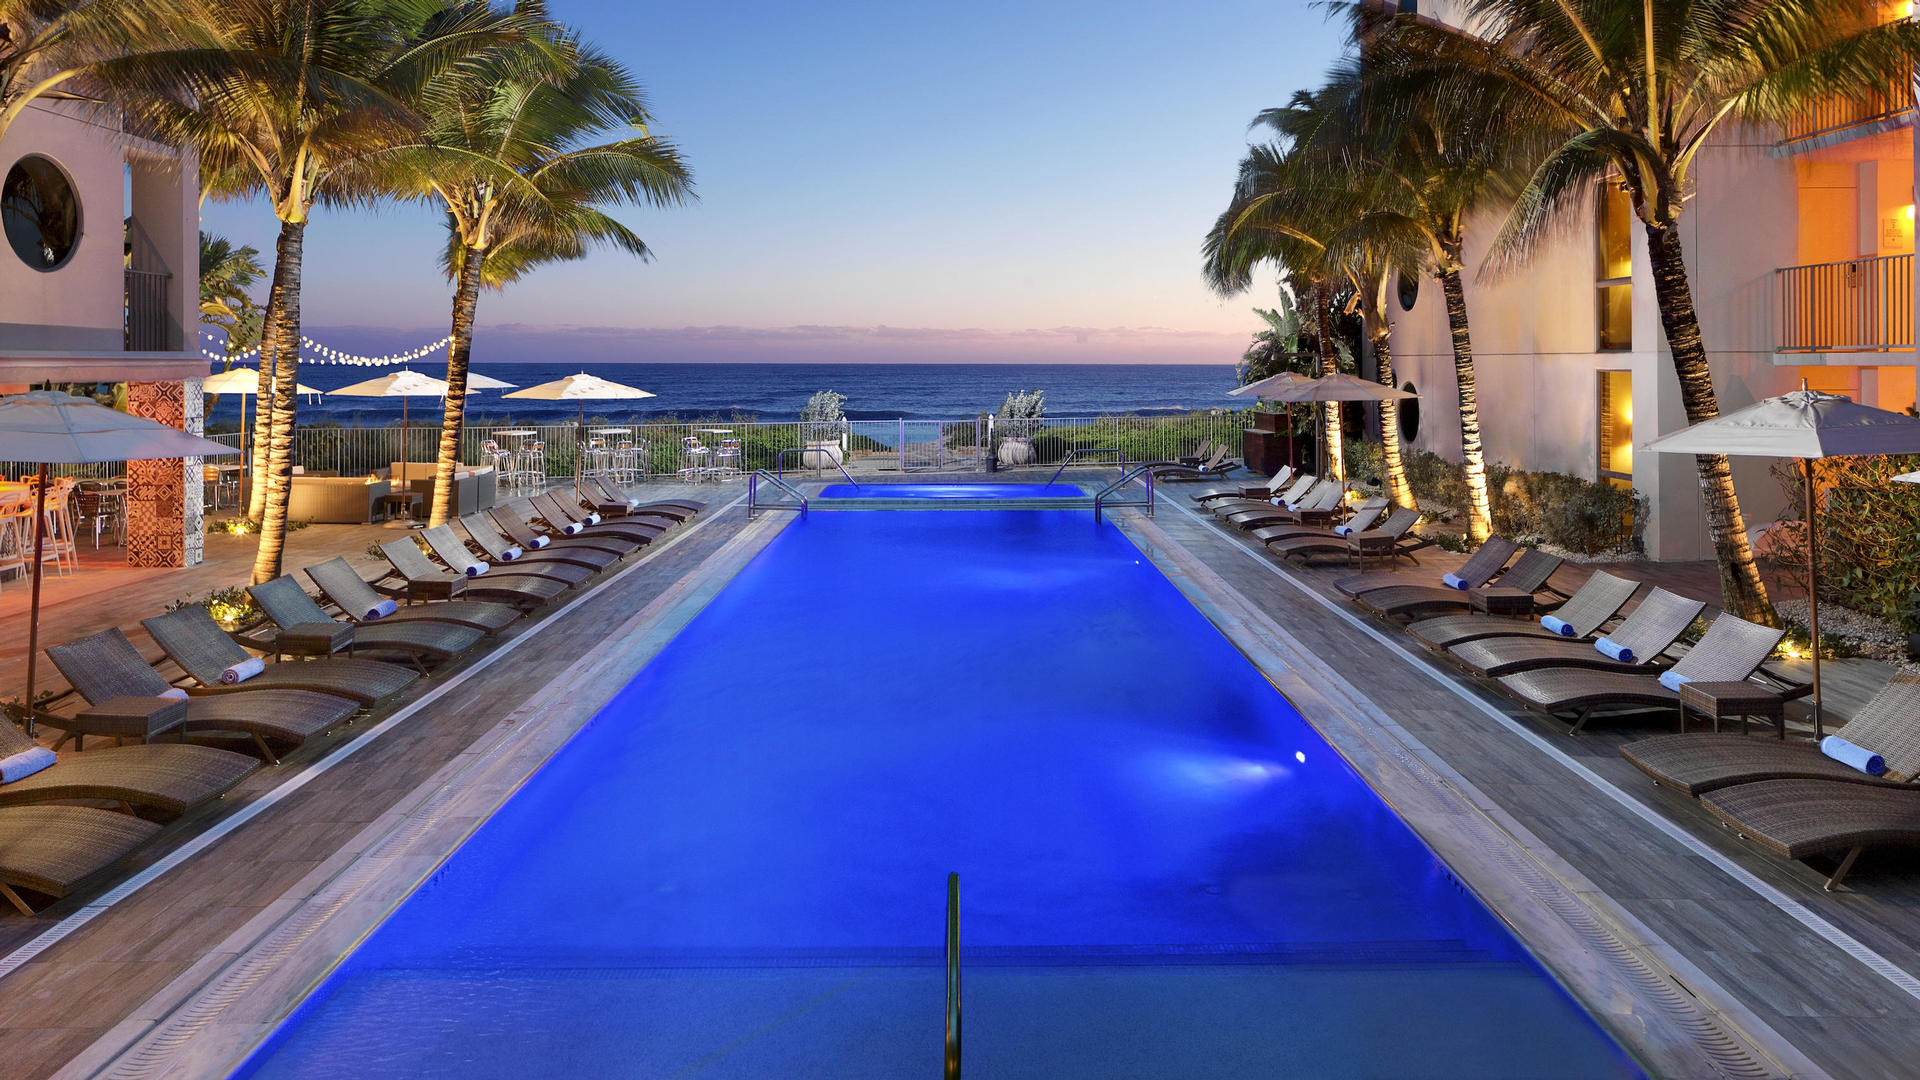 night time pool at costa d'este